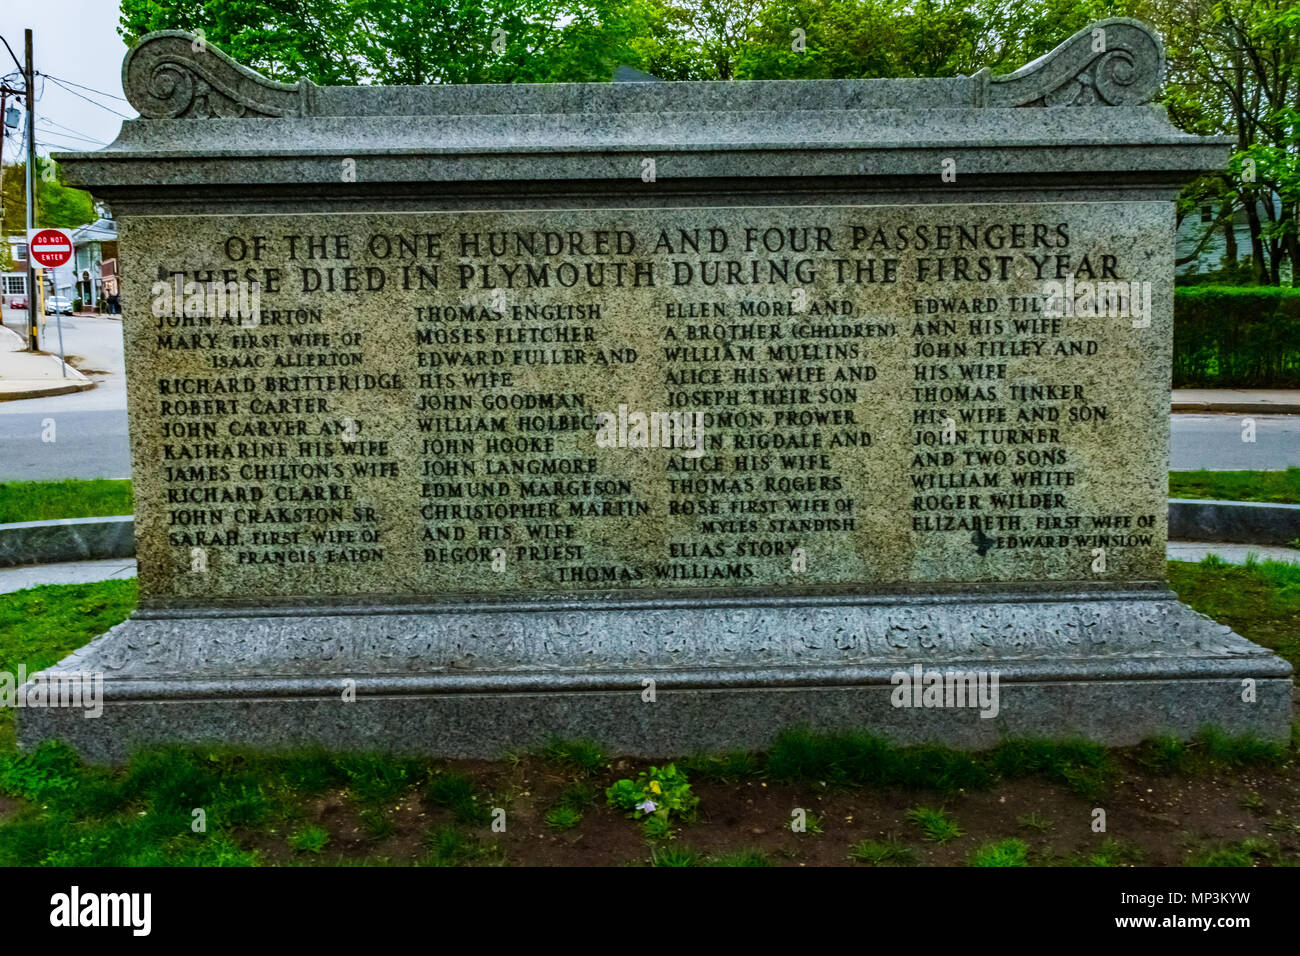 The first final resting place of the pilgrims that parished in the first year of the Plymouth Colony's existence. - Stock Image